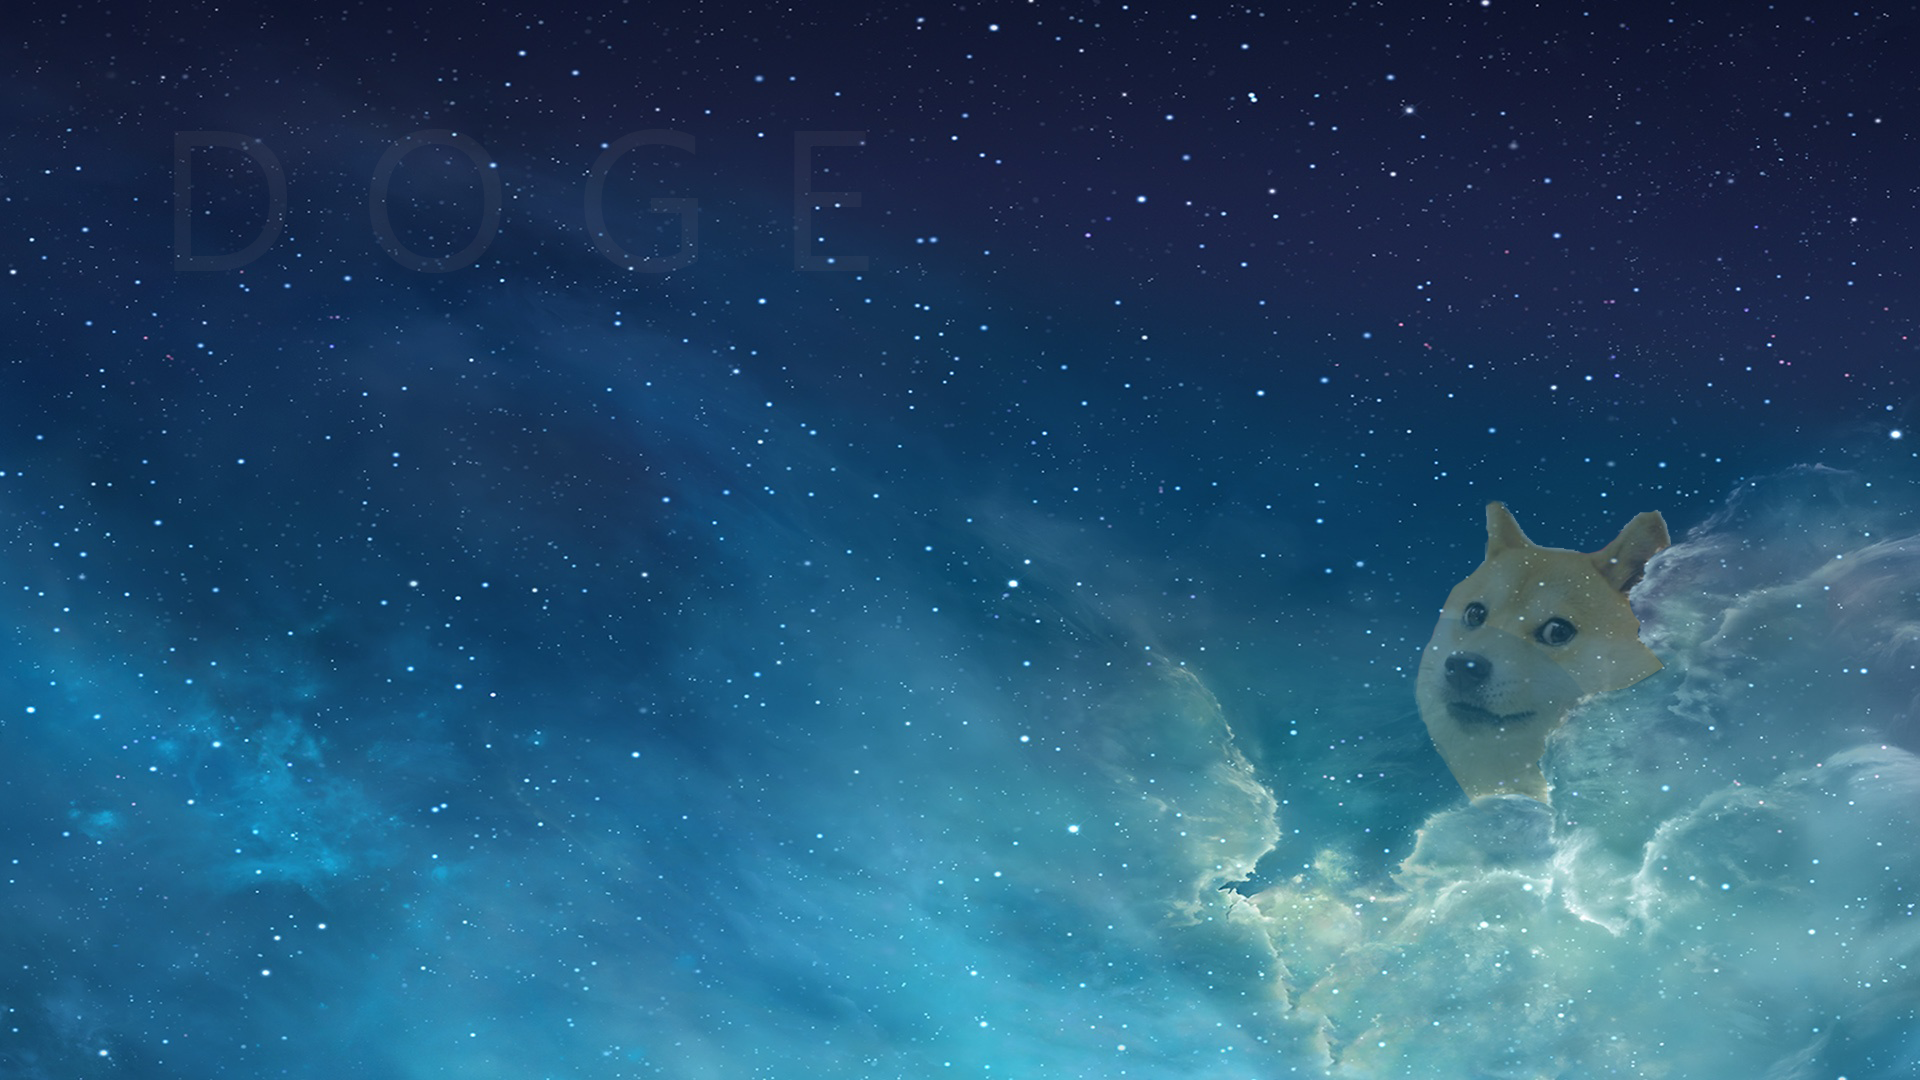 Doge in the sky   Doge Wallpaper 1920x1080 86582 1920x1080